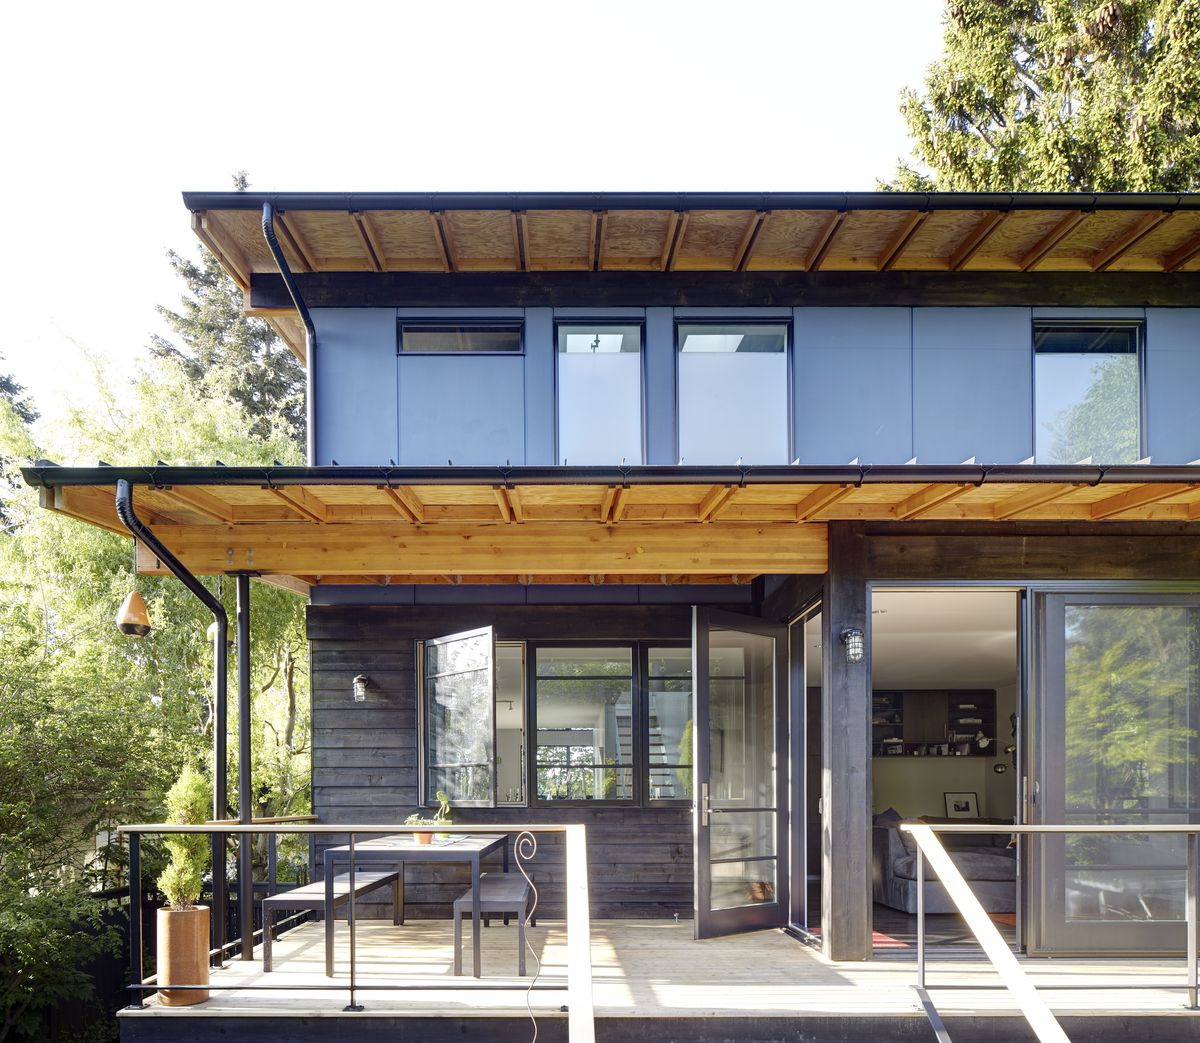 Best Kitchen Gallery: See Inside Eight Seattle Modern Homes Curbed Seattle of Modern Homes In Seattle  on rachelxblog.com